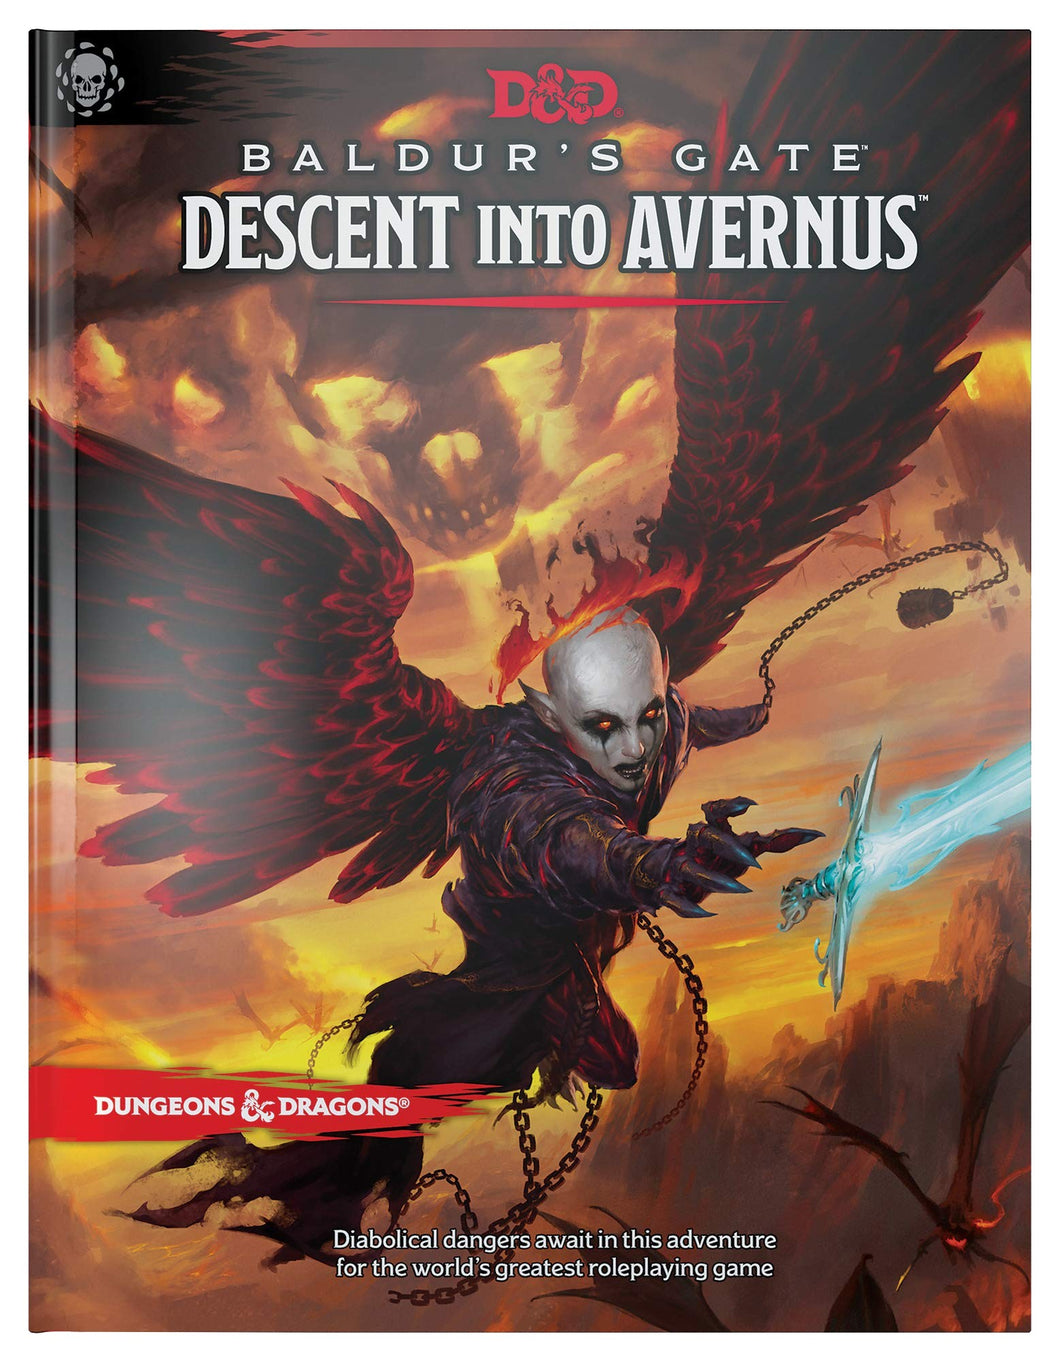 Dungeons & Dragons Adventure Baldur's Gate: Descent into Avernus